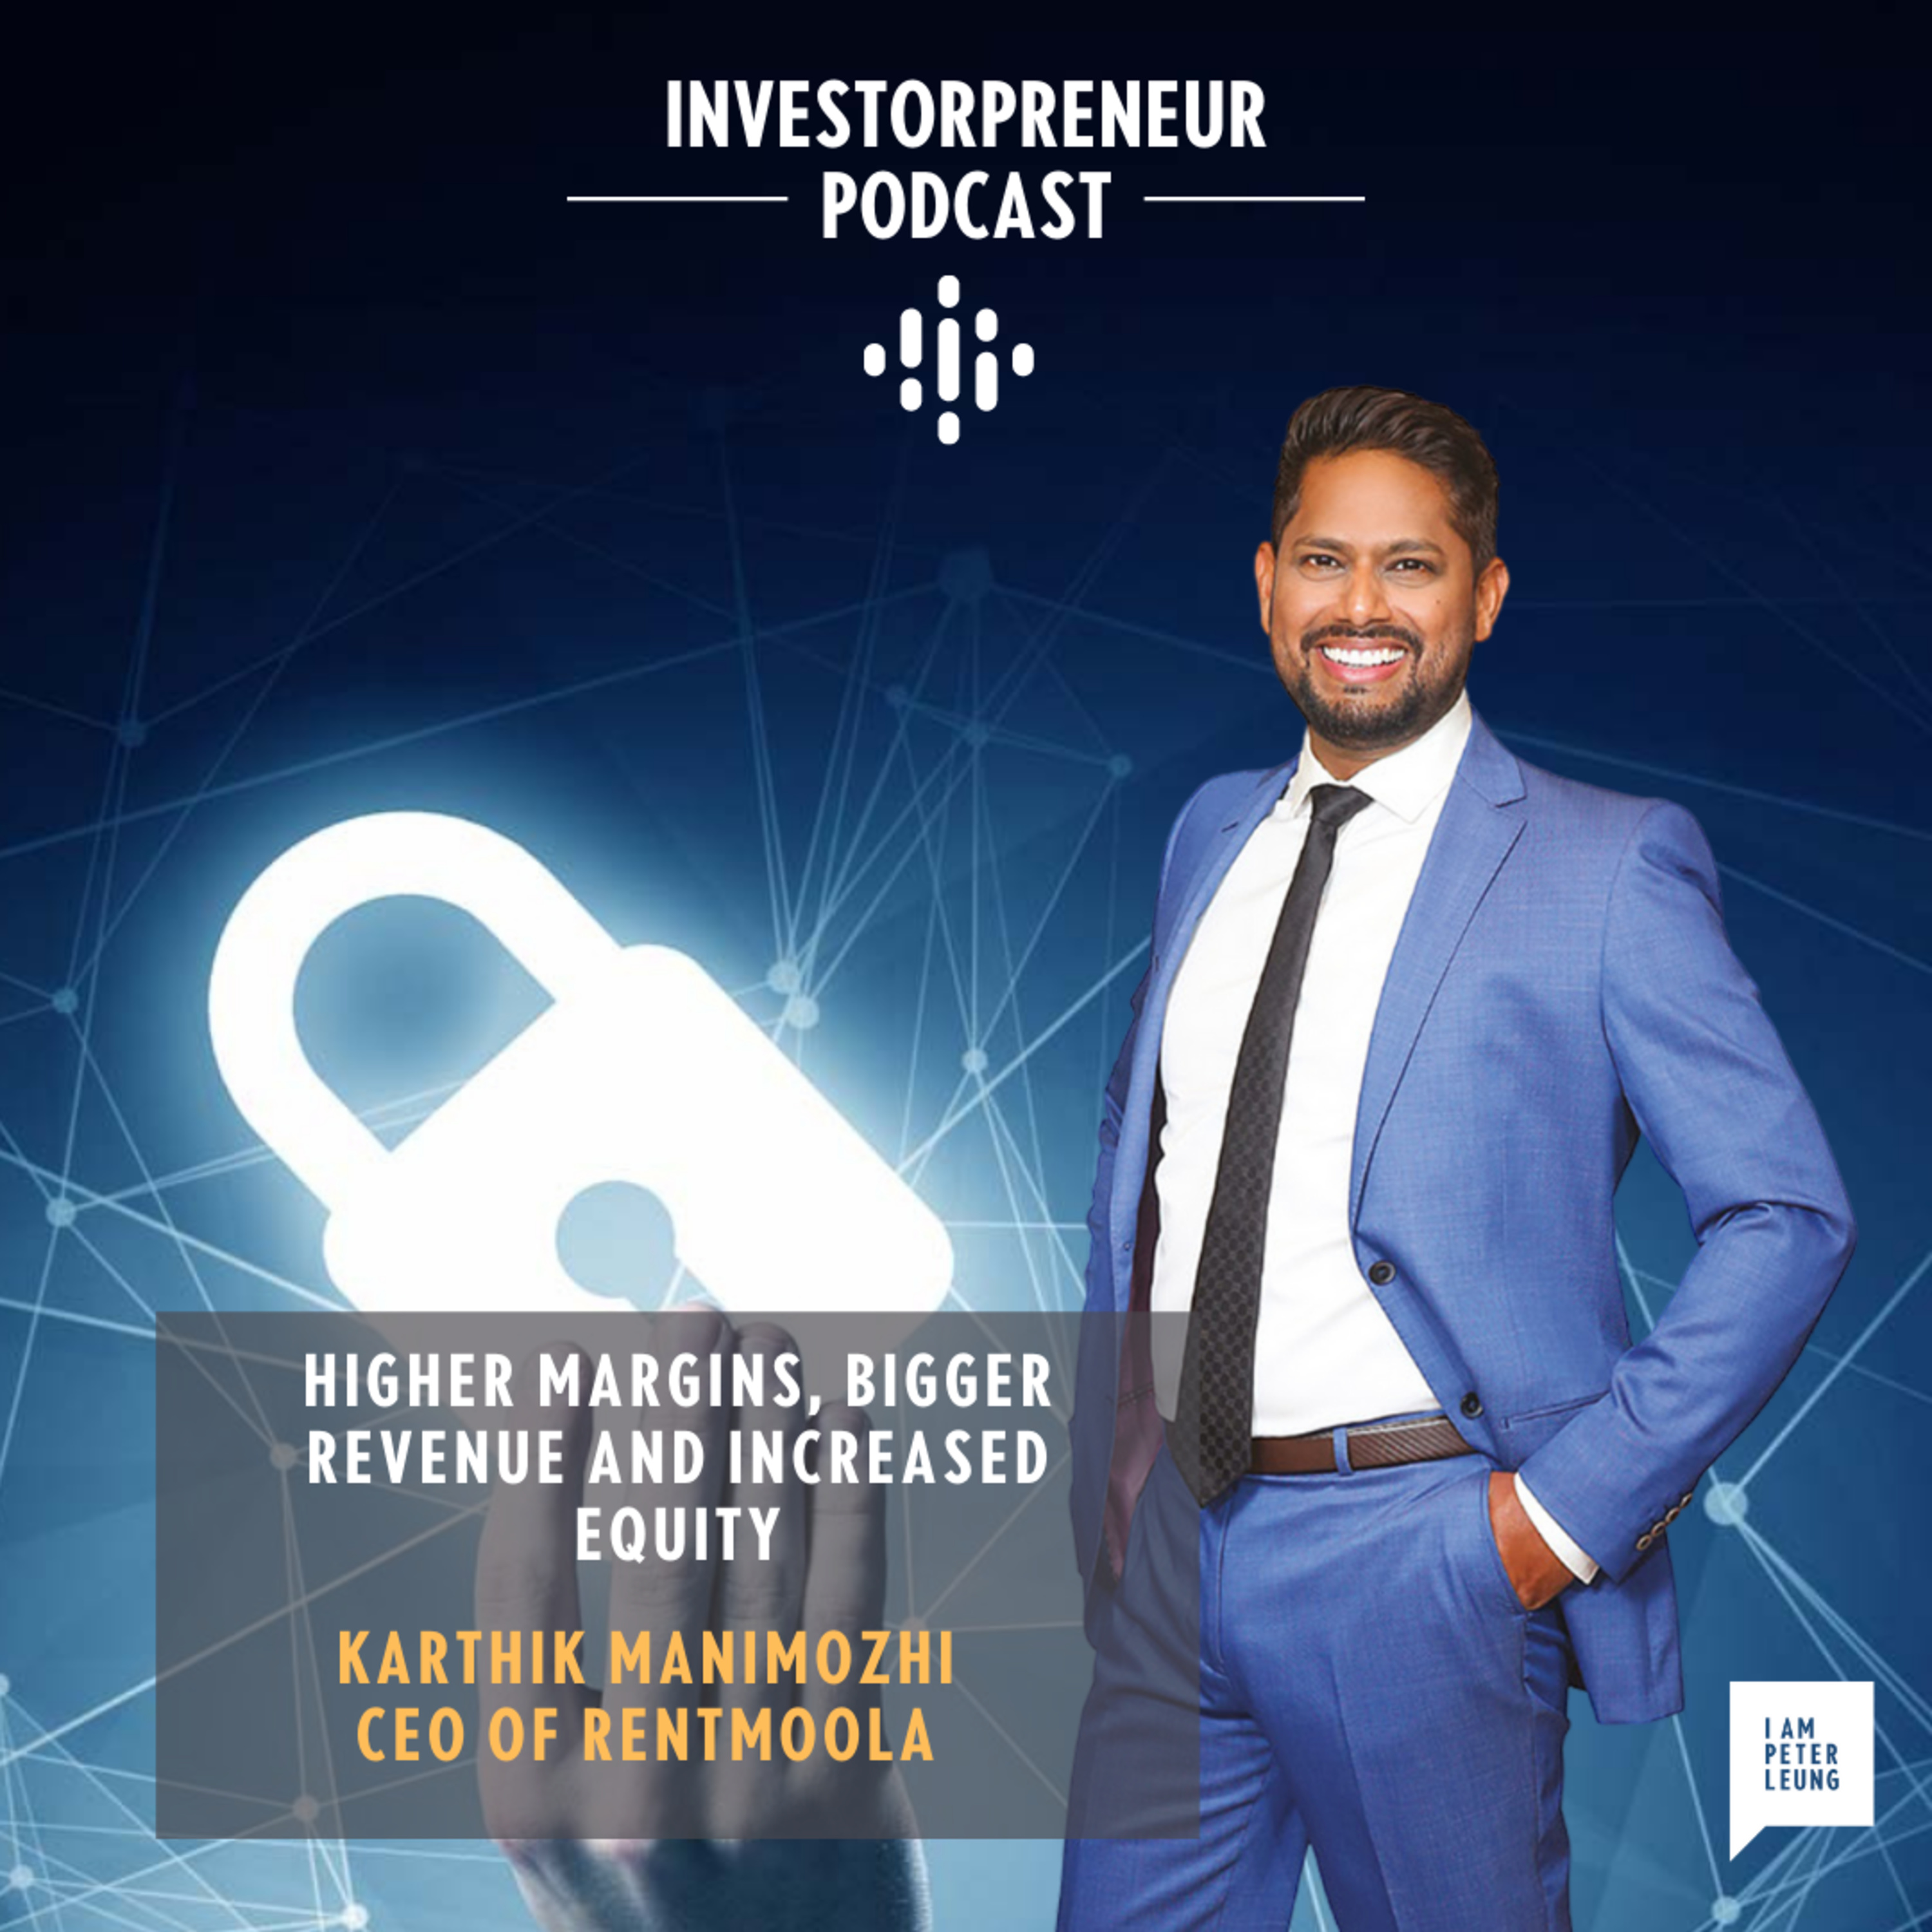 Higher Margins, Larger Revenue and Increased Equity with Karthik Manimozhi